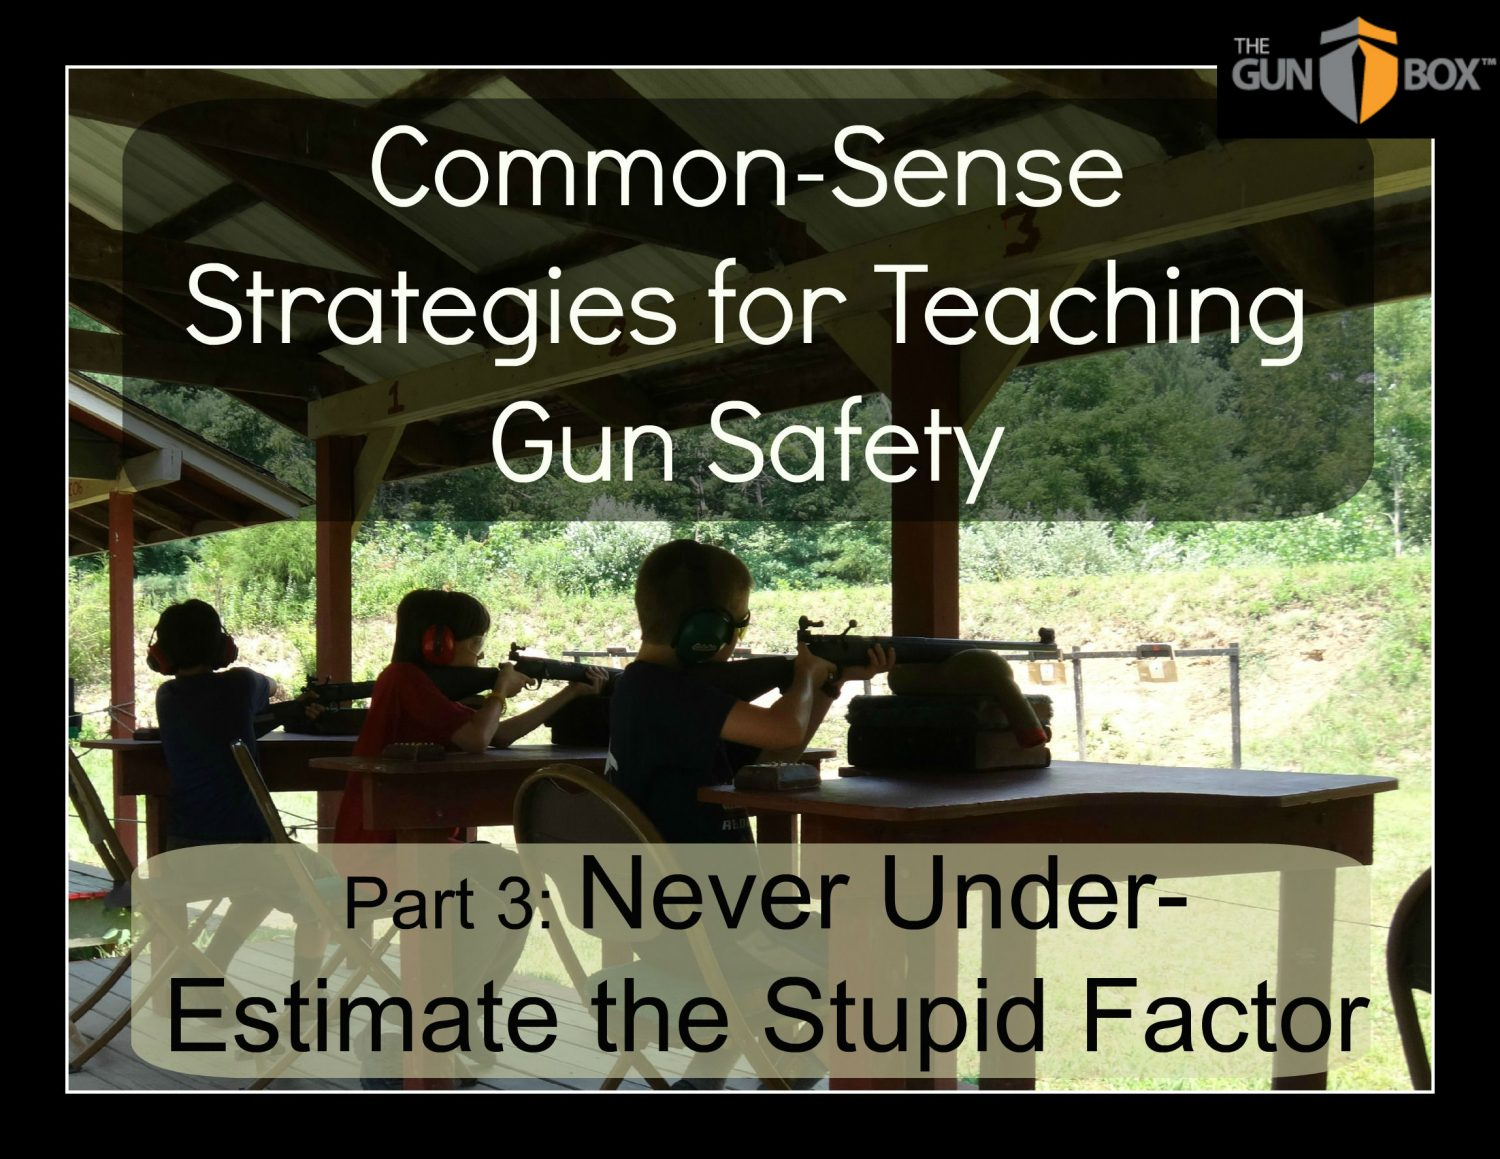 Common Sense Strategies for Teaching Gun Safety: Never Underestimate the Stupid Factor